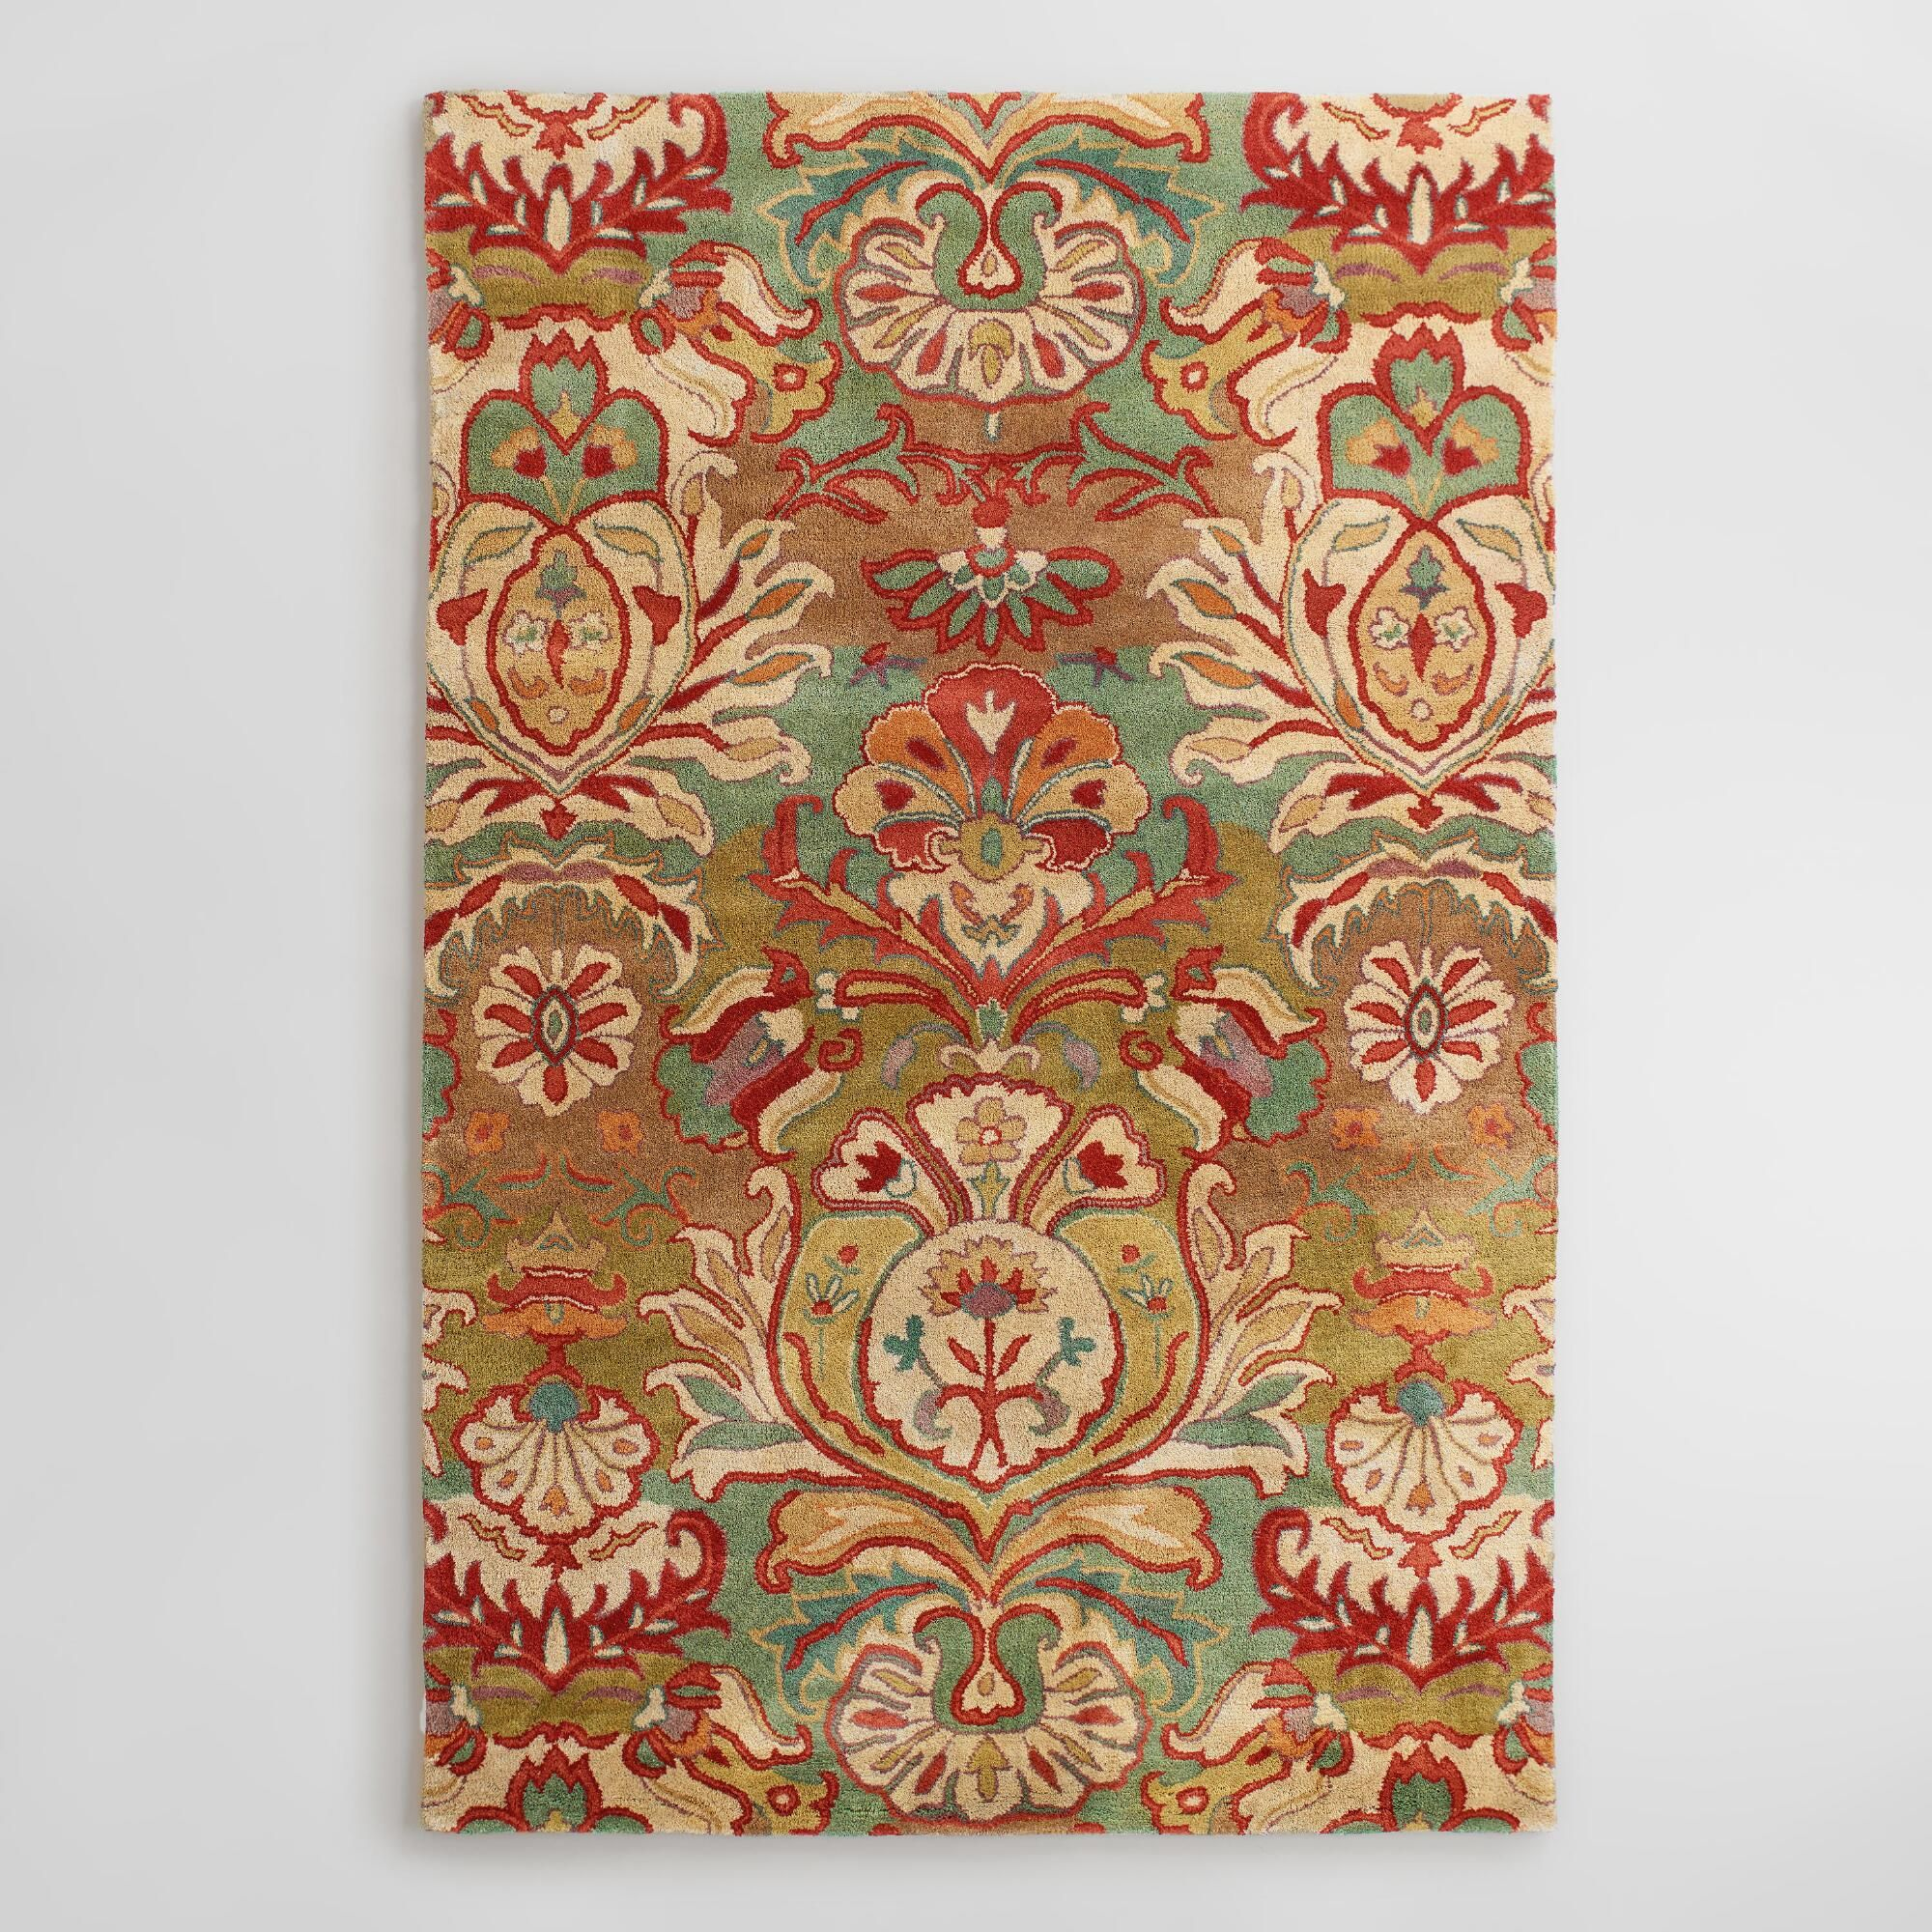 Hand Tufted In India Of Wool Pile This High Quality Rug Features A Fl Medallion Motif Designed Exclusively For World Market Its Plush Underfoot Feel